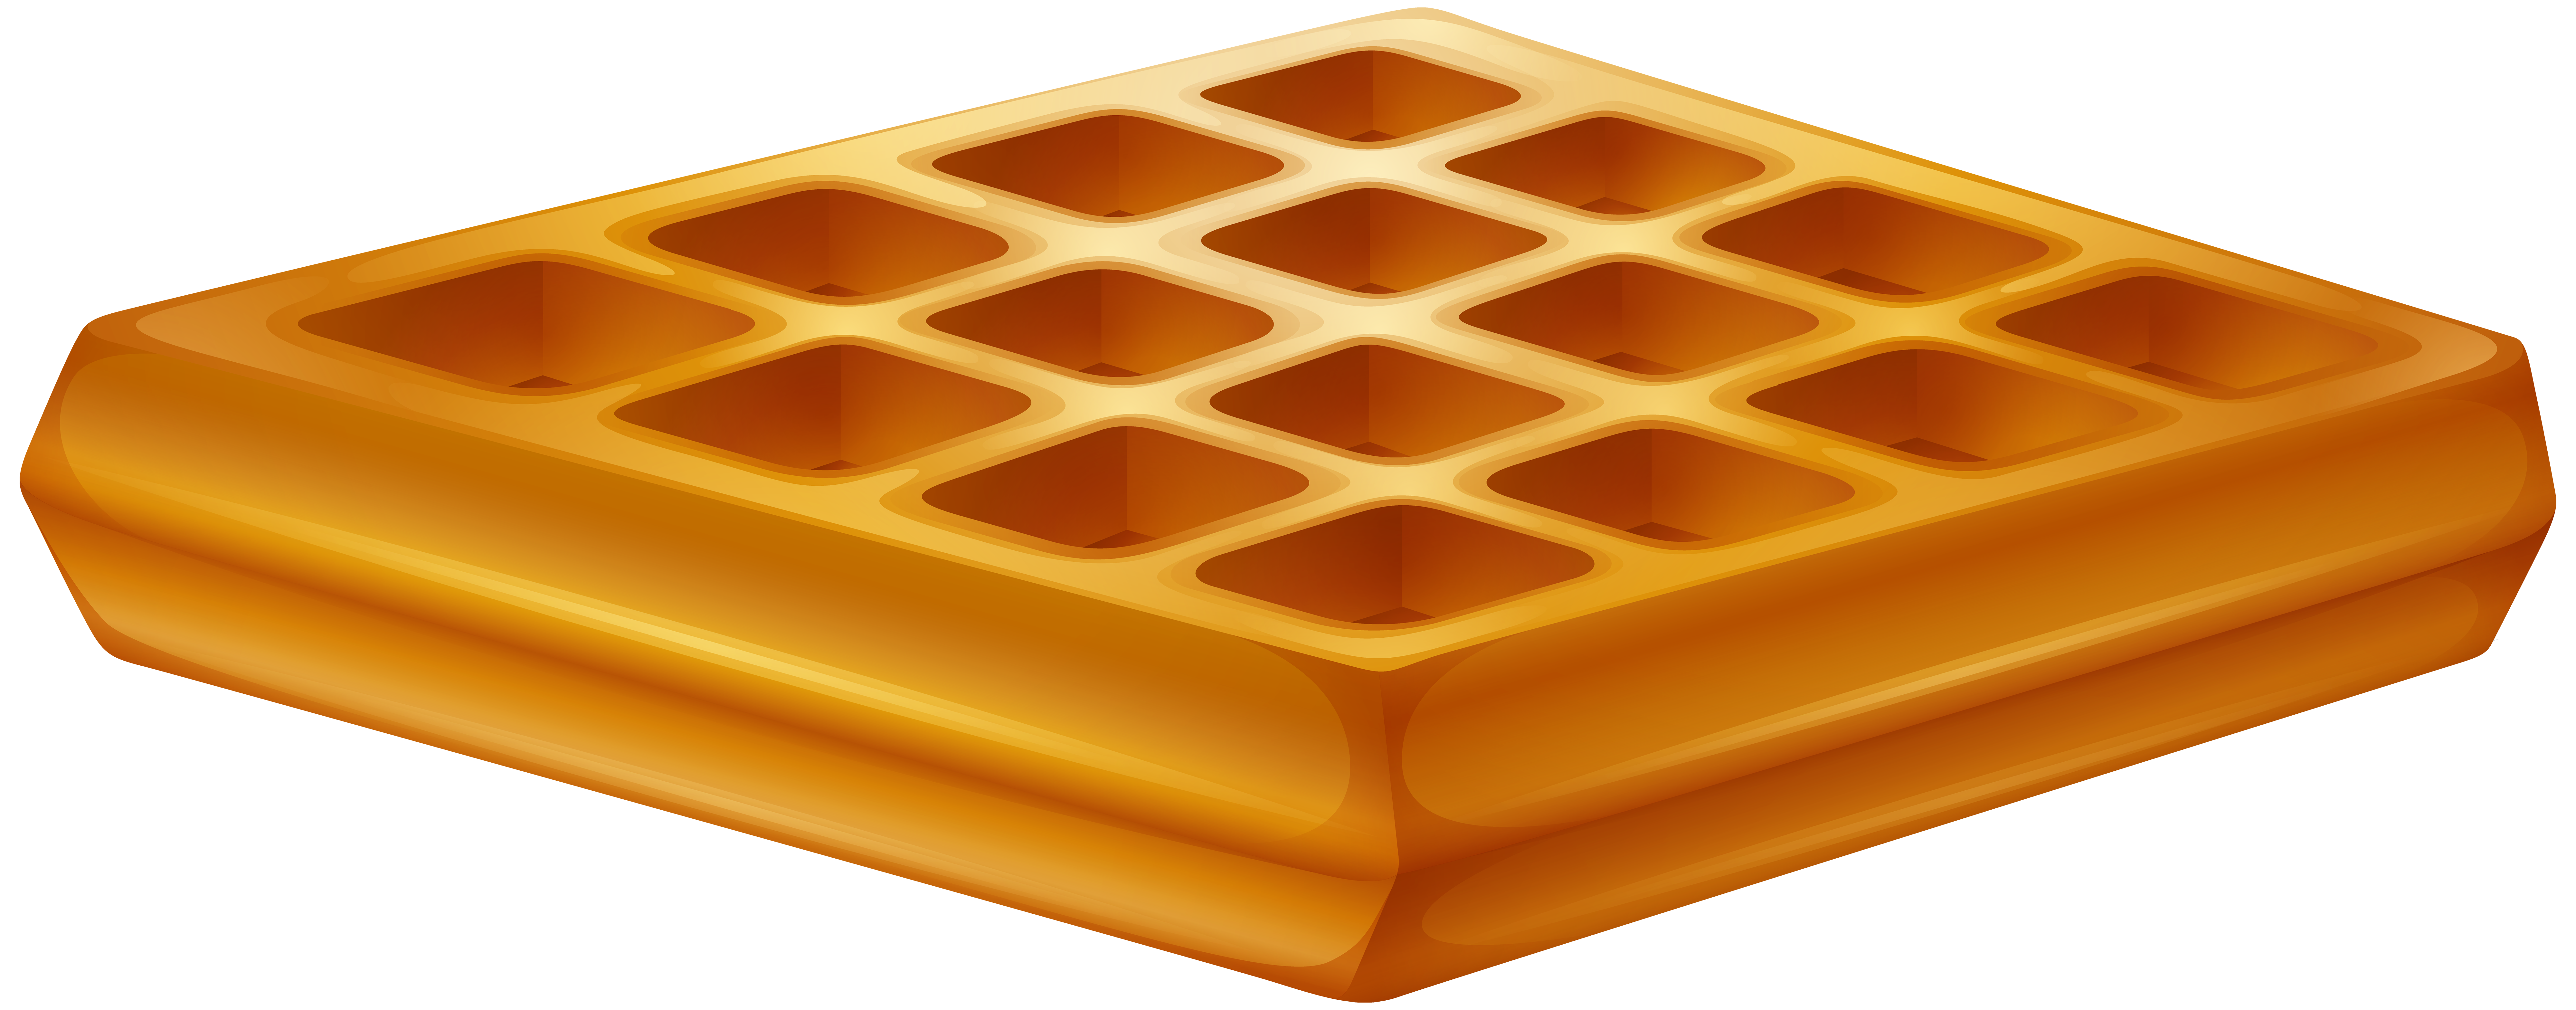 Clip art best web. Waffle png graphic free